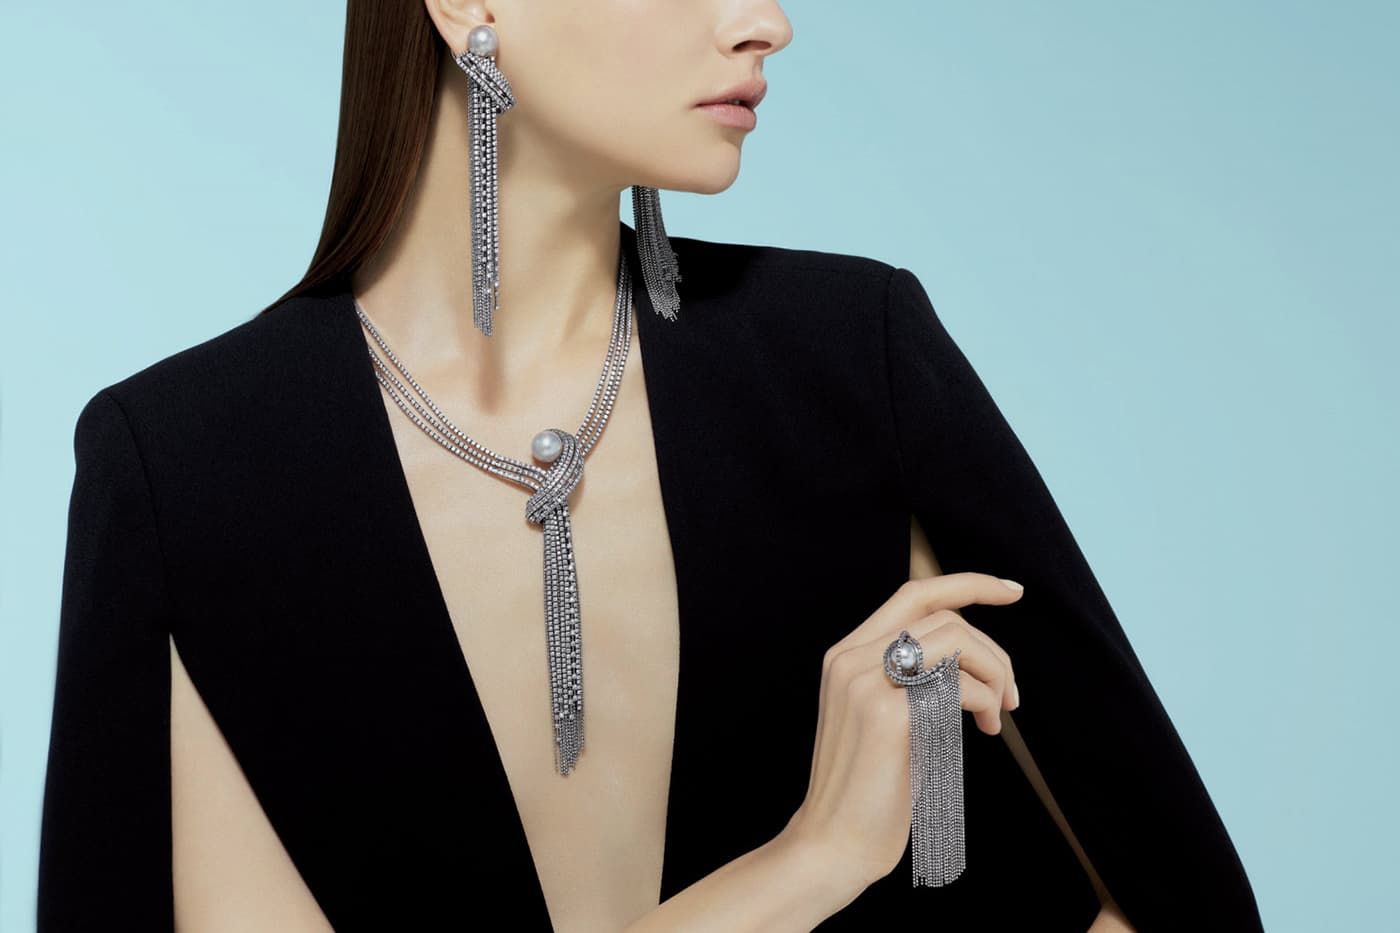 Tasaki 'Ocean Frontier' collection 'Waterfall' suite with pearls and diamonds in white gold